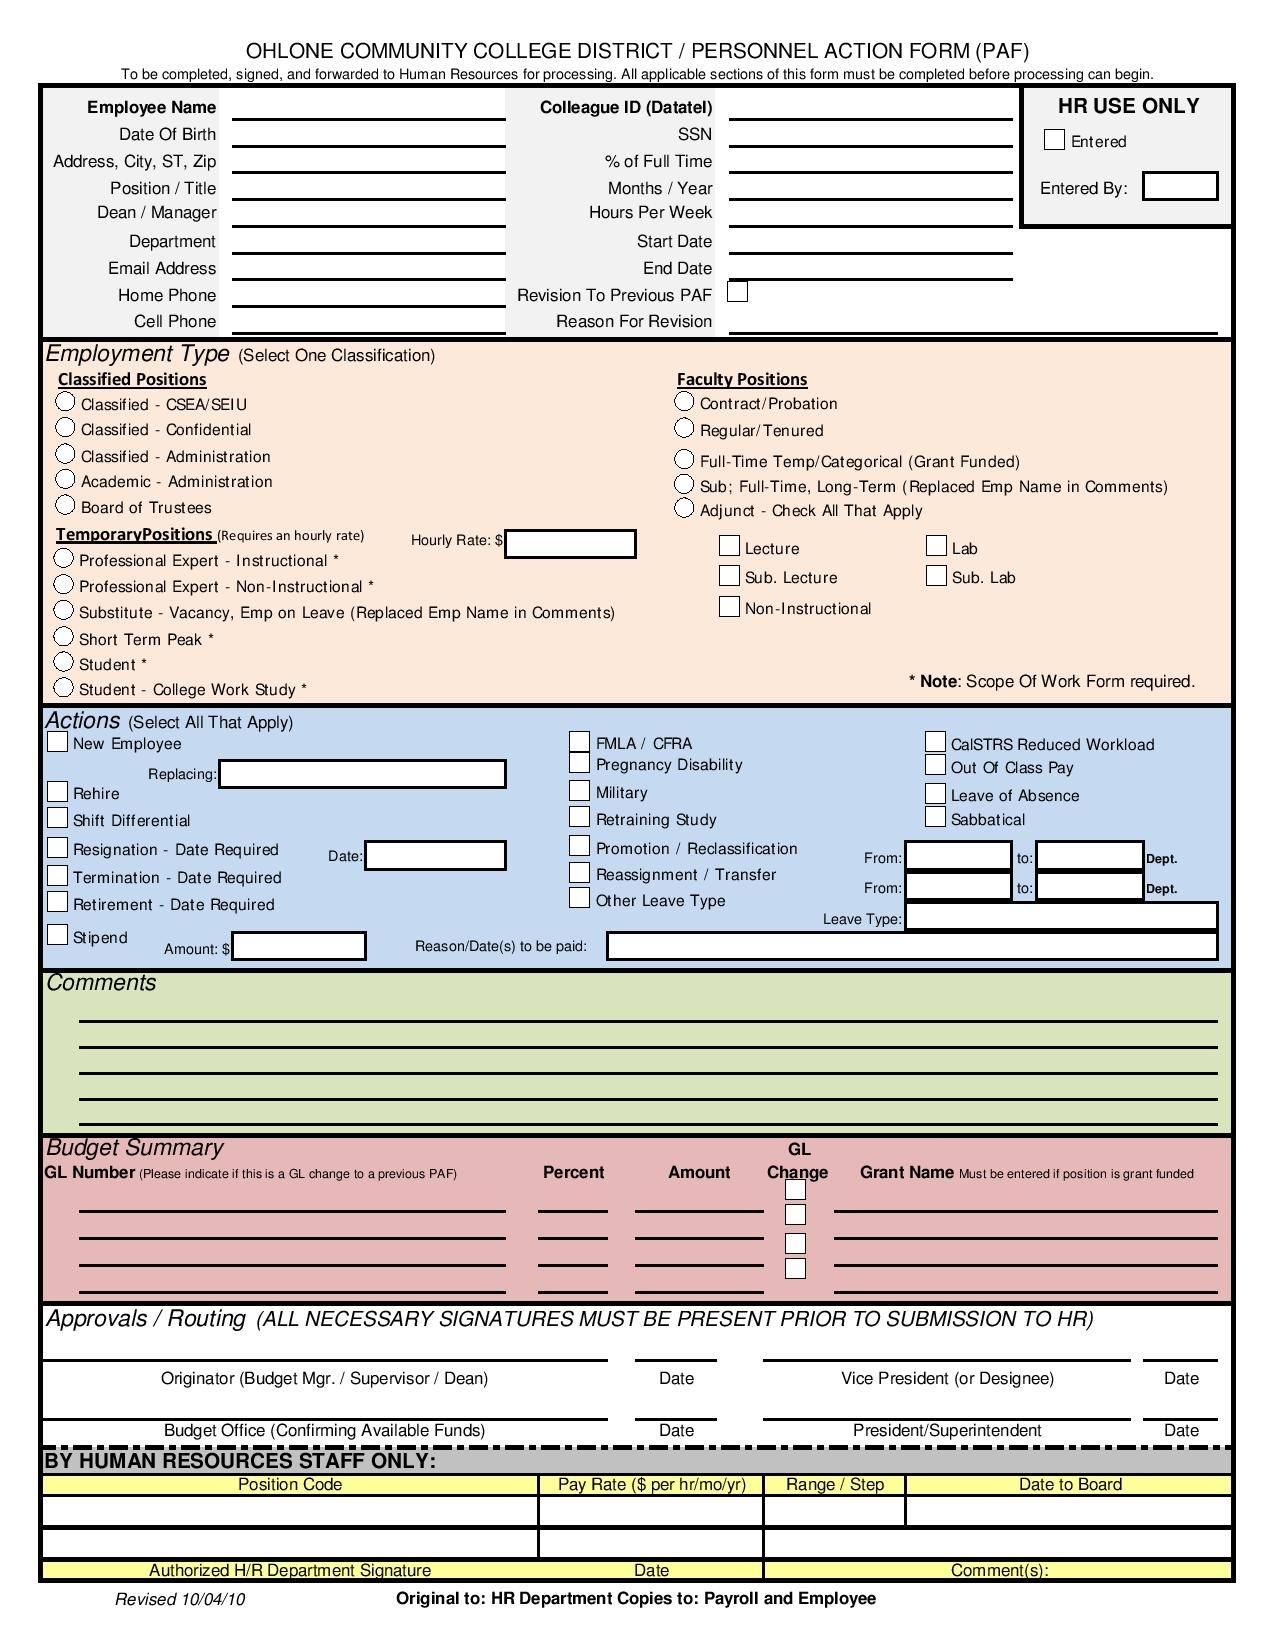 college district personnel action form page 001